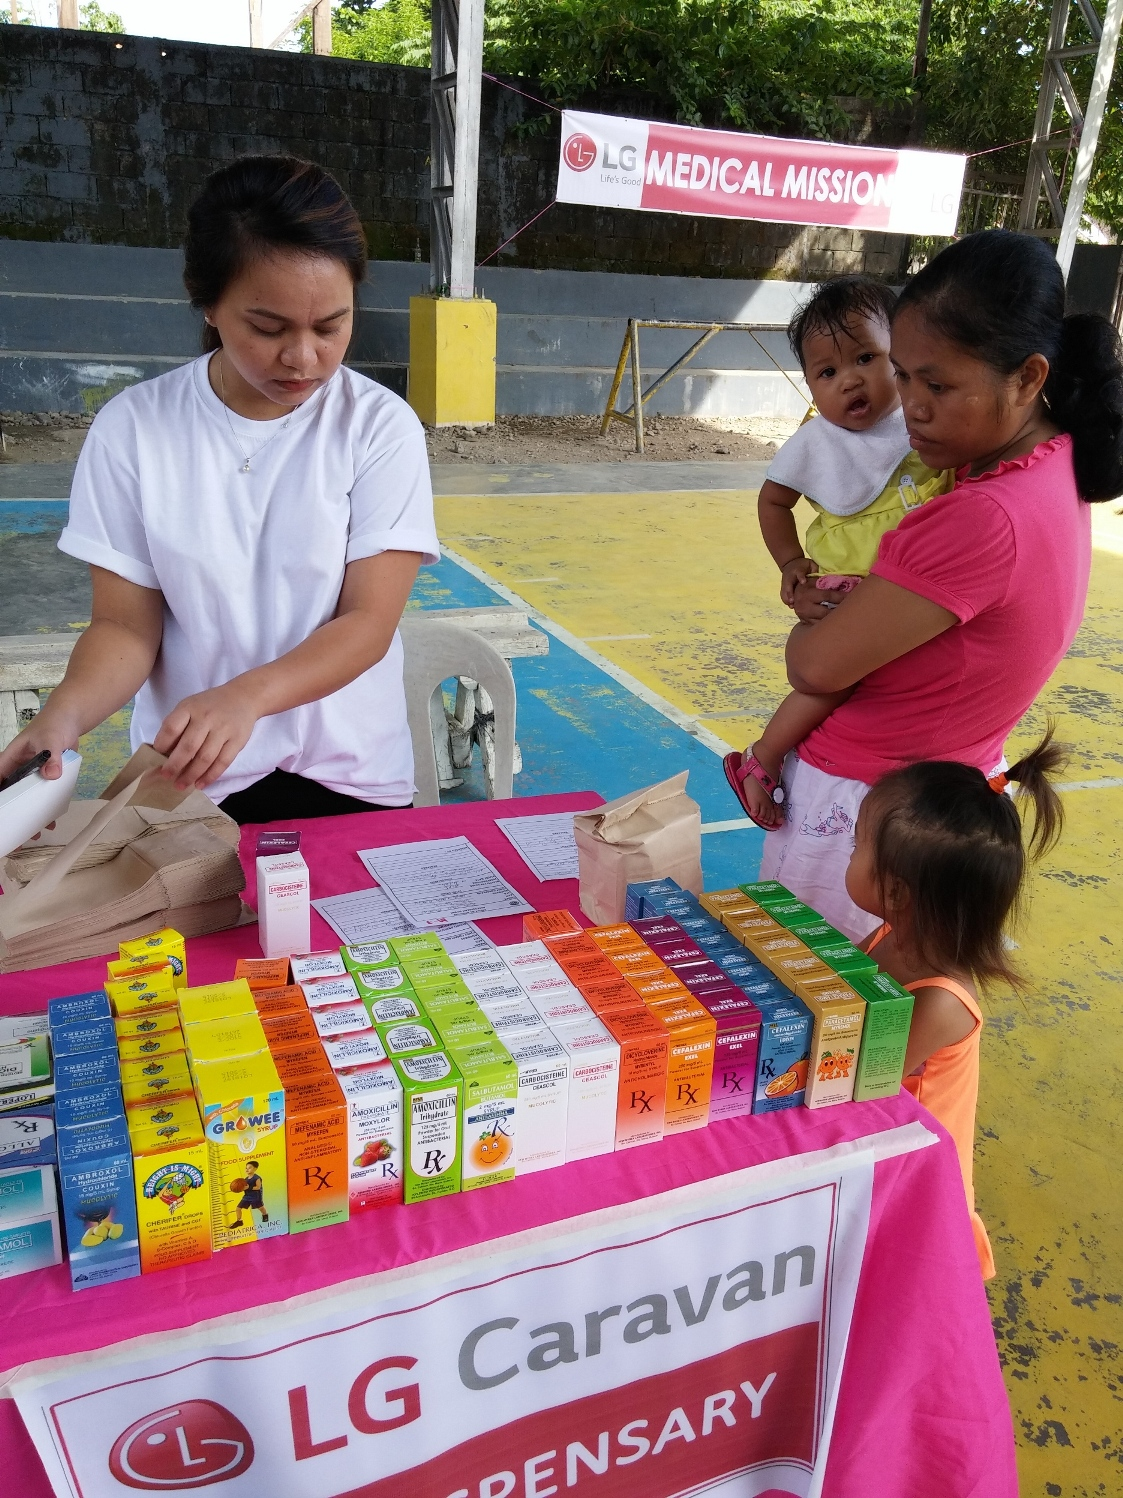 LG Caravan Medical Mission